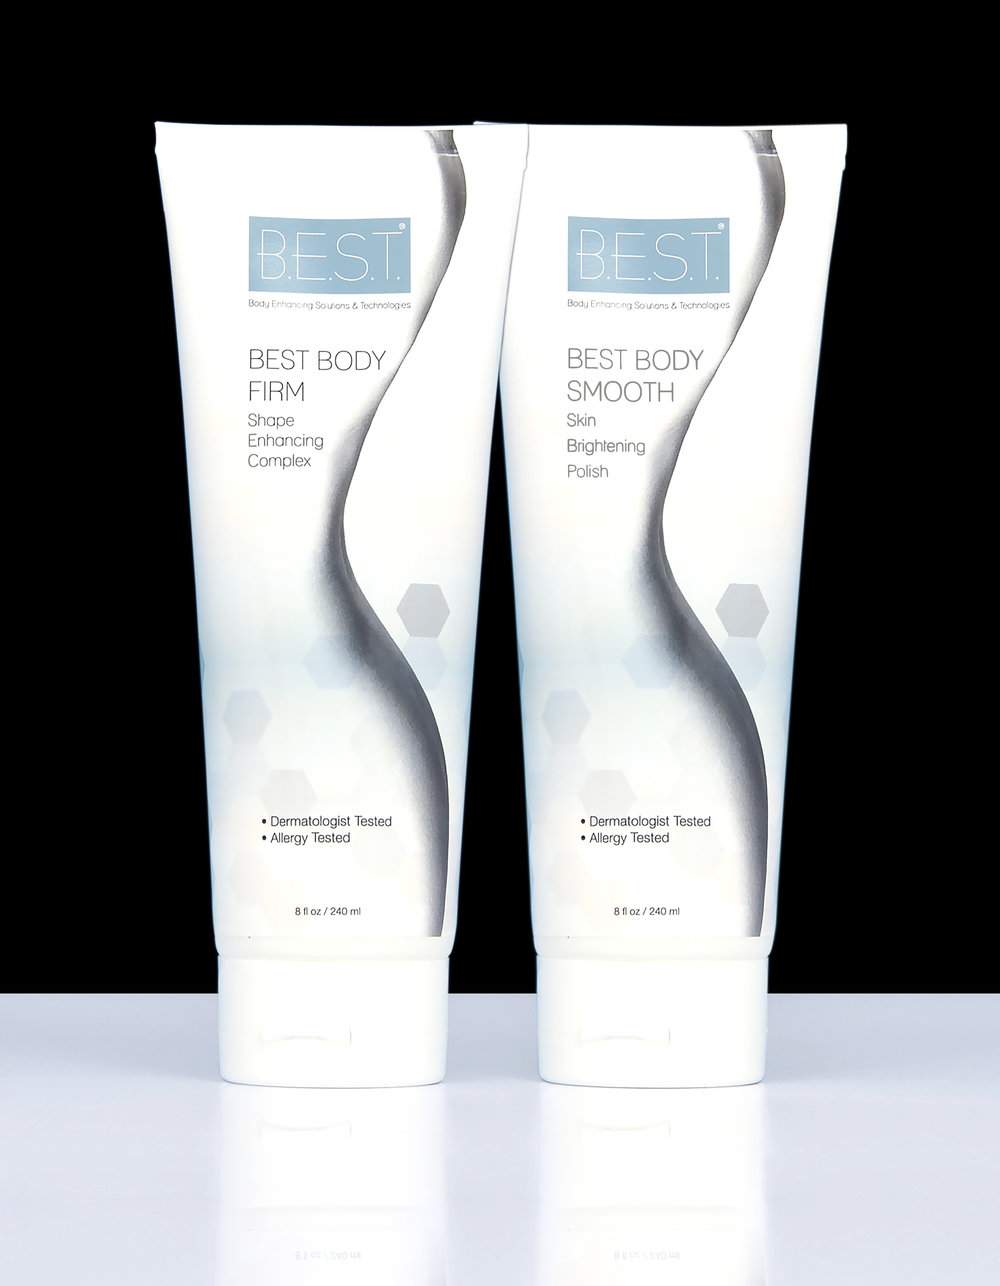 BEST Body Firm & Smooth